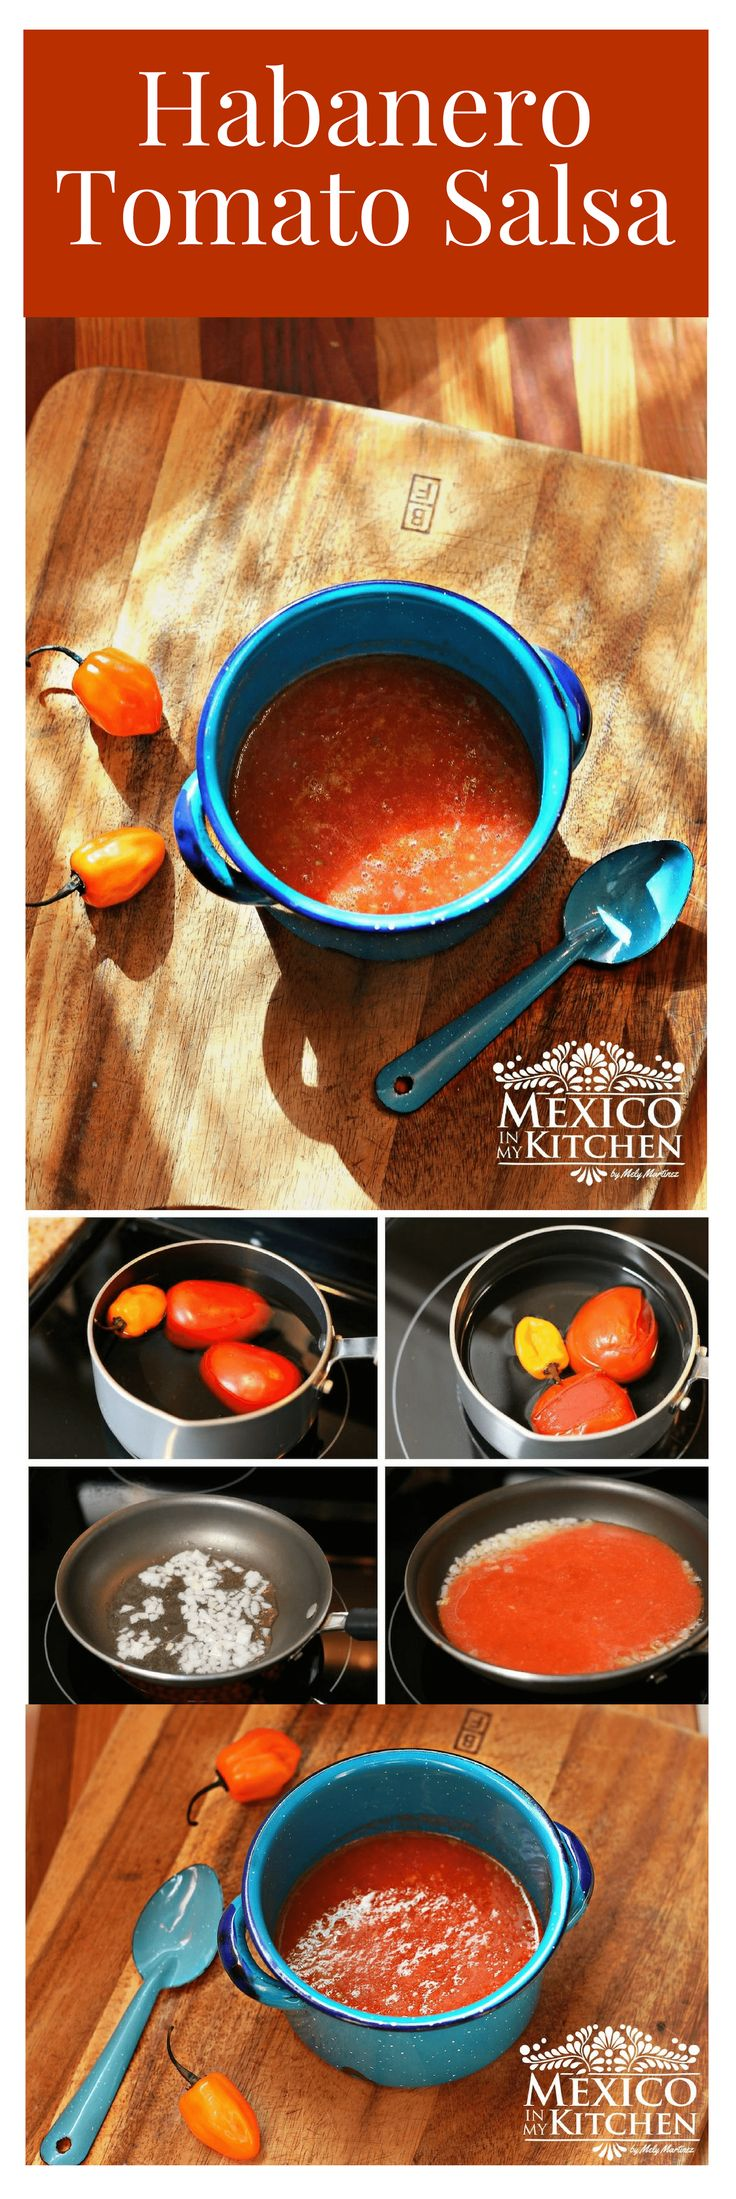 Although Habanero peppers rate high on the Scoville, you can still enjoy their flavor by making a mellower salsa using tomatoes, like in this Habanero Tomato Salsa. #mexicanrecipes #mexicanfood #mexicancuisine #salsas #homecook